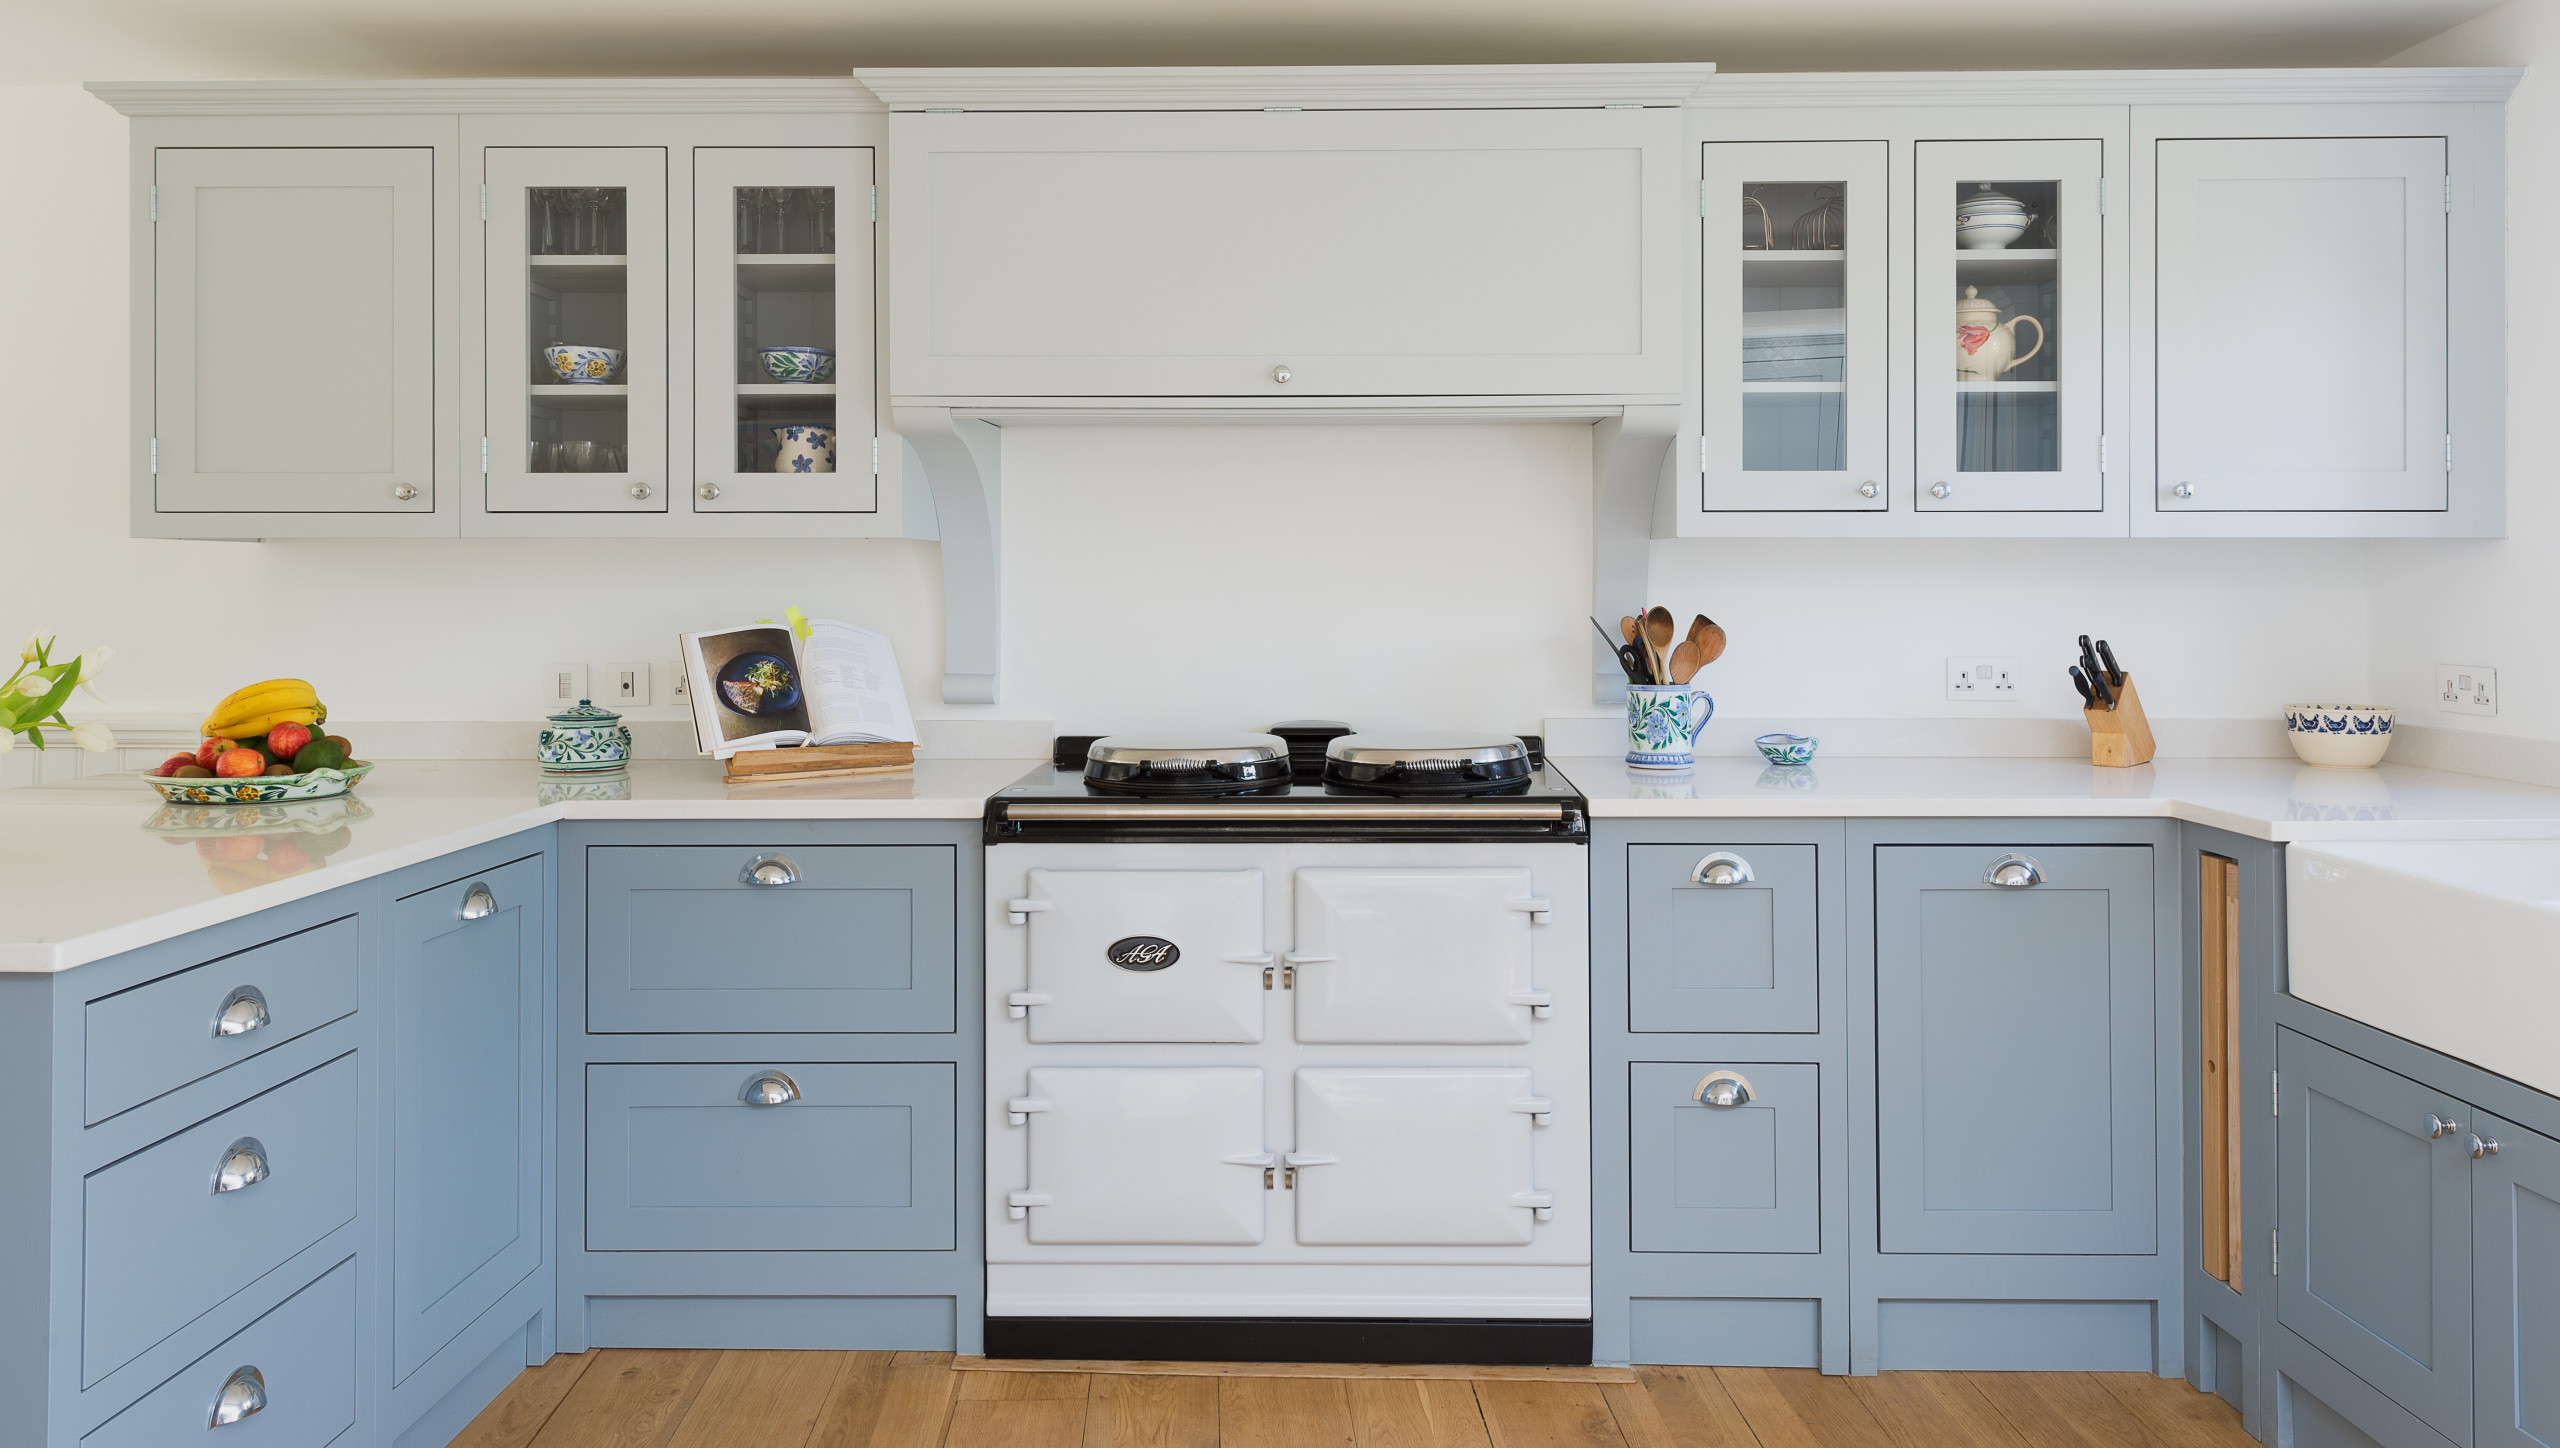 75 Beautiful Farmhouse Blue Kitchen Pictures Ideas January 2021 Houzz